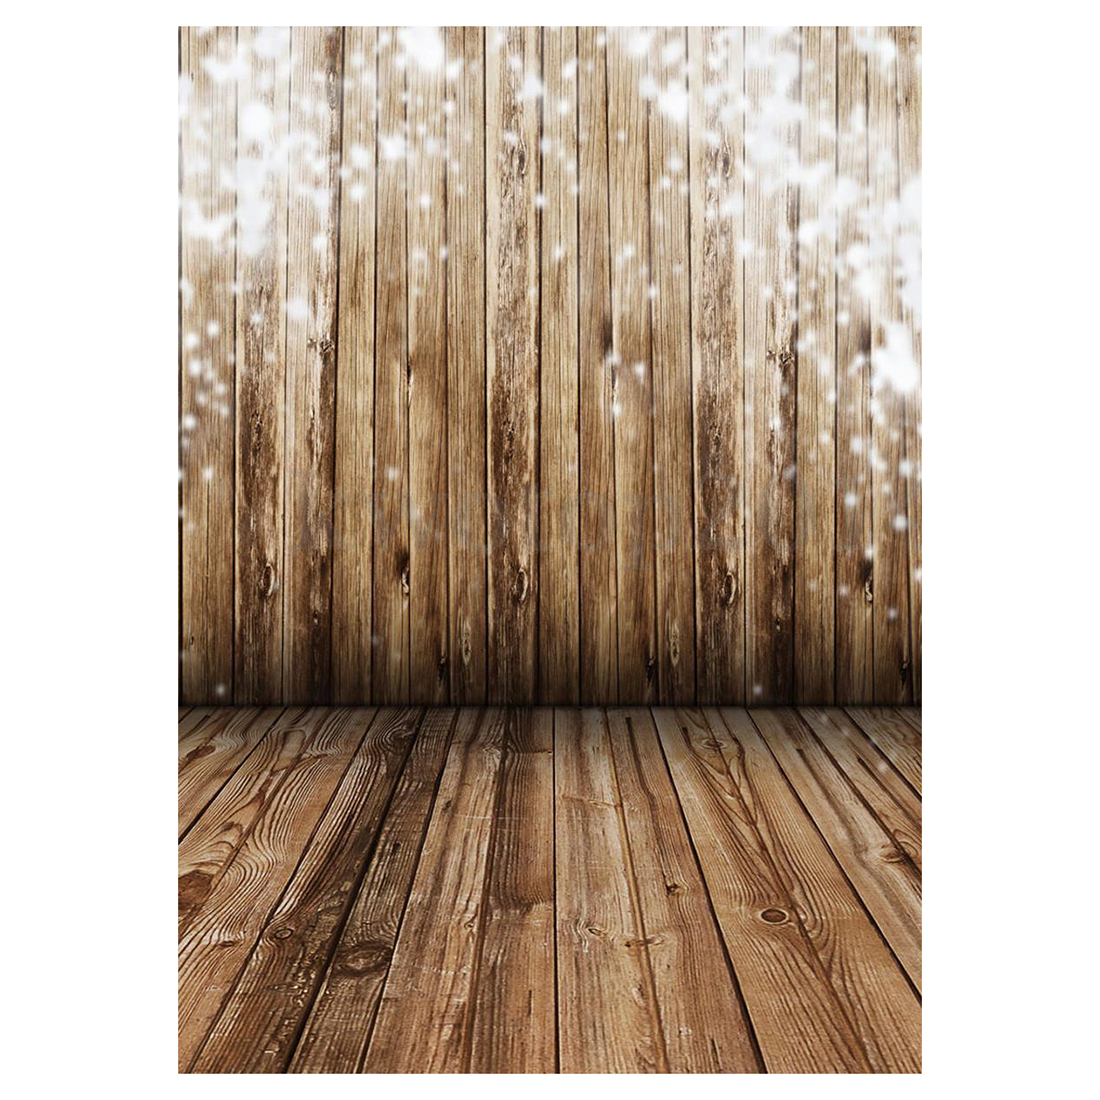 3X5FT Wood Wall Floor Vinyl Photography Backdrop Photo Background Studio Props camp bambino